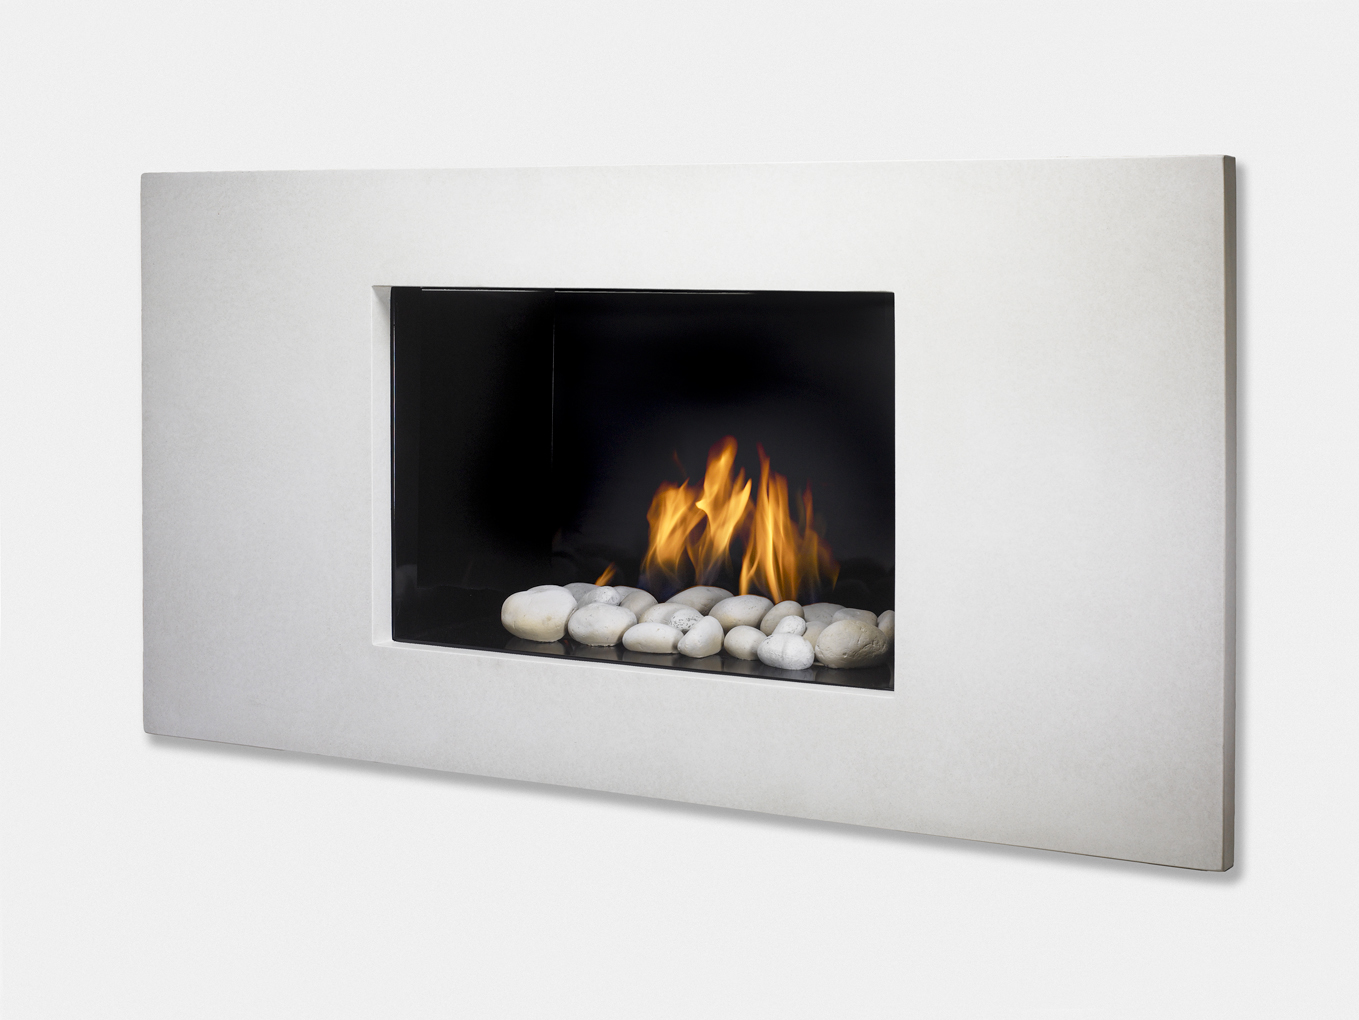 The Modern Vision Gas Fireplace Shown With Black Enamel Interior And White Surround Simplicity Of Clean Lines Combined Gives